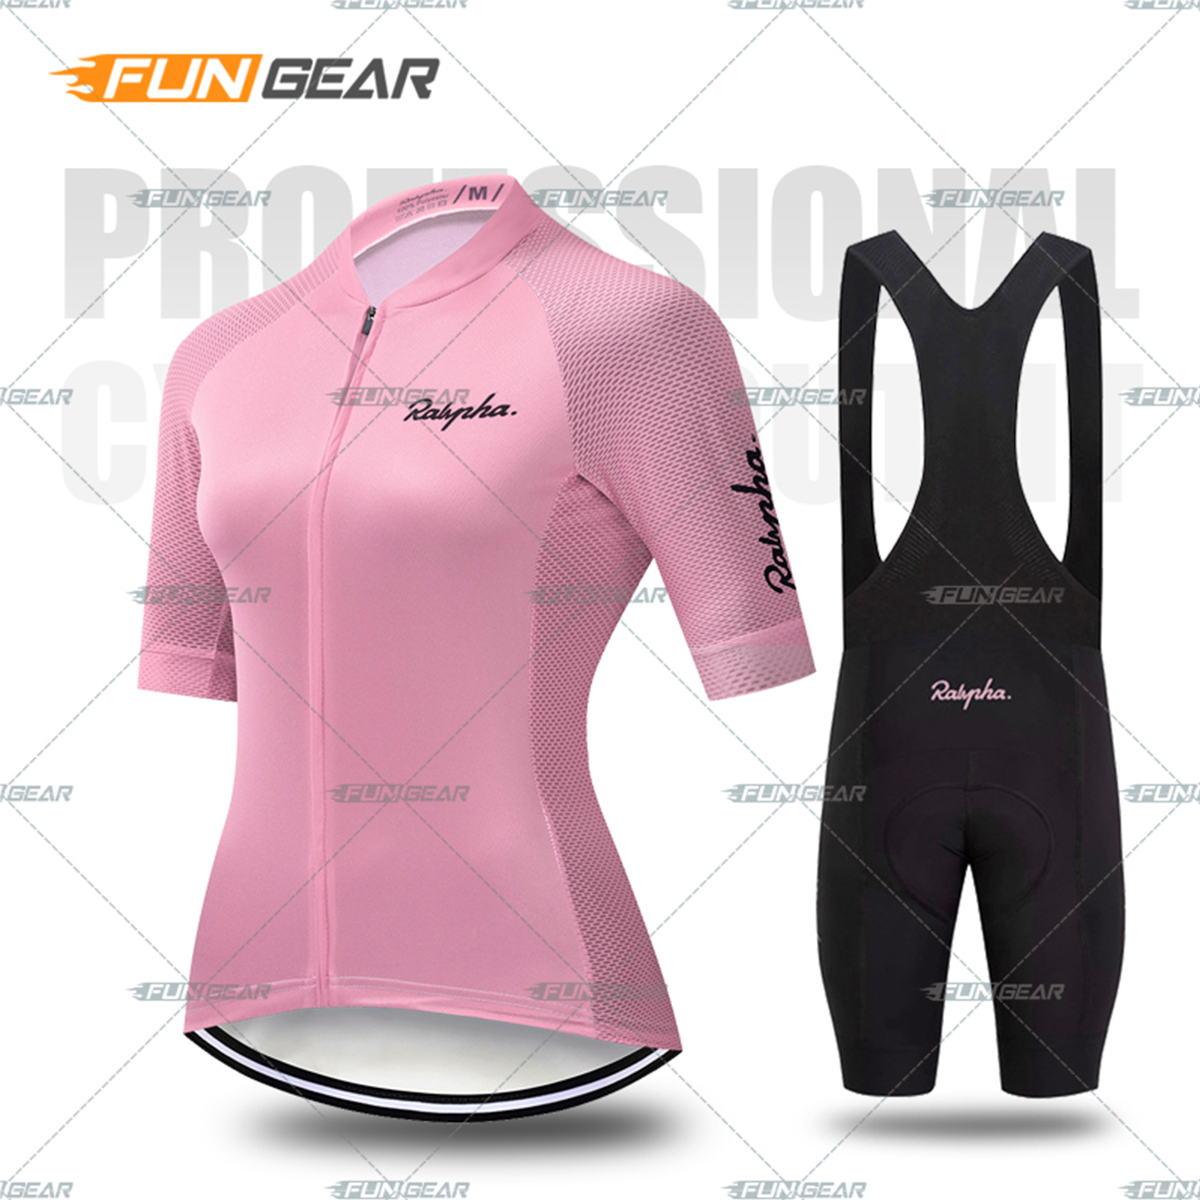 Women Cycling Clothing Bicycle Jersey Set Female MTB Ropa Ciclismo Girl Cycle Casual Wear Road Bike Bib Short Pant Pad 7 Colors